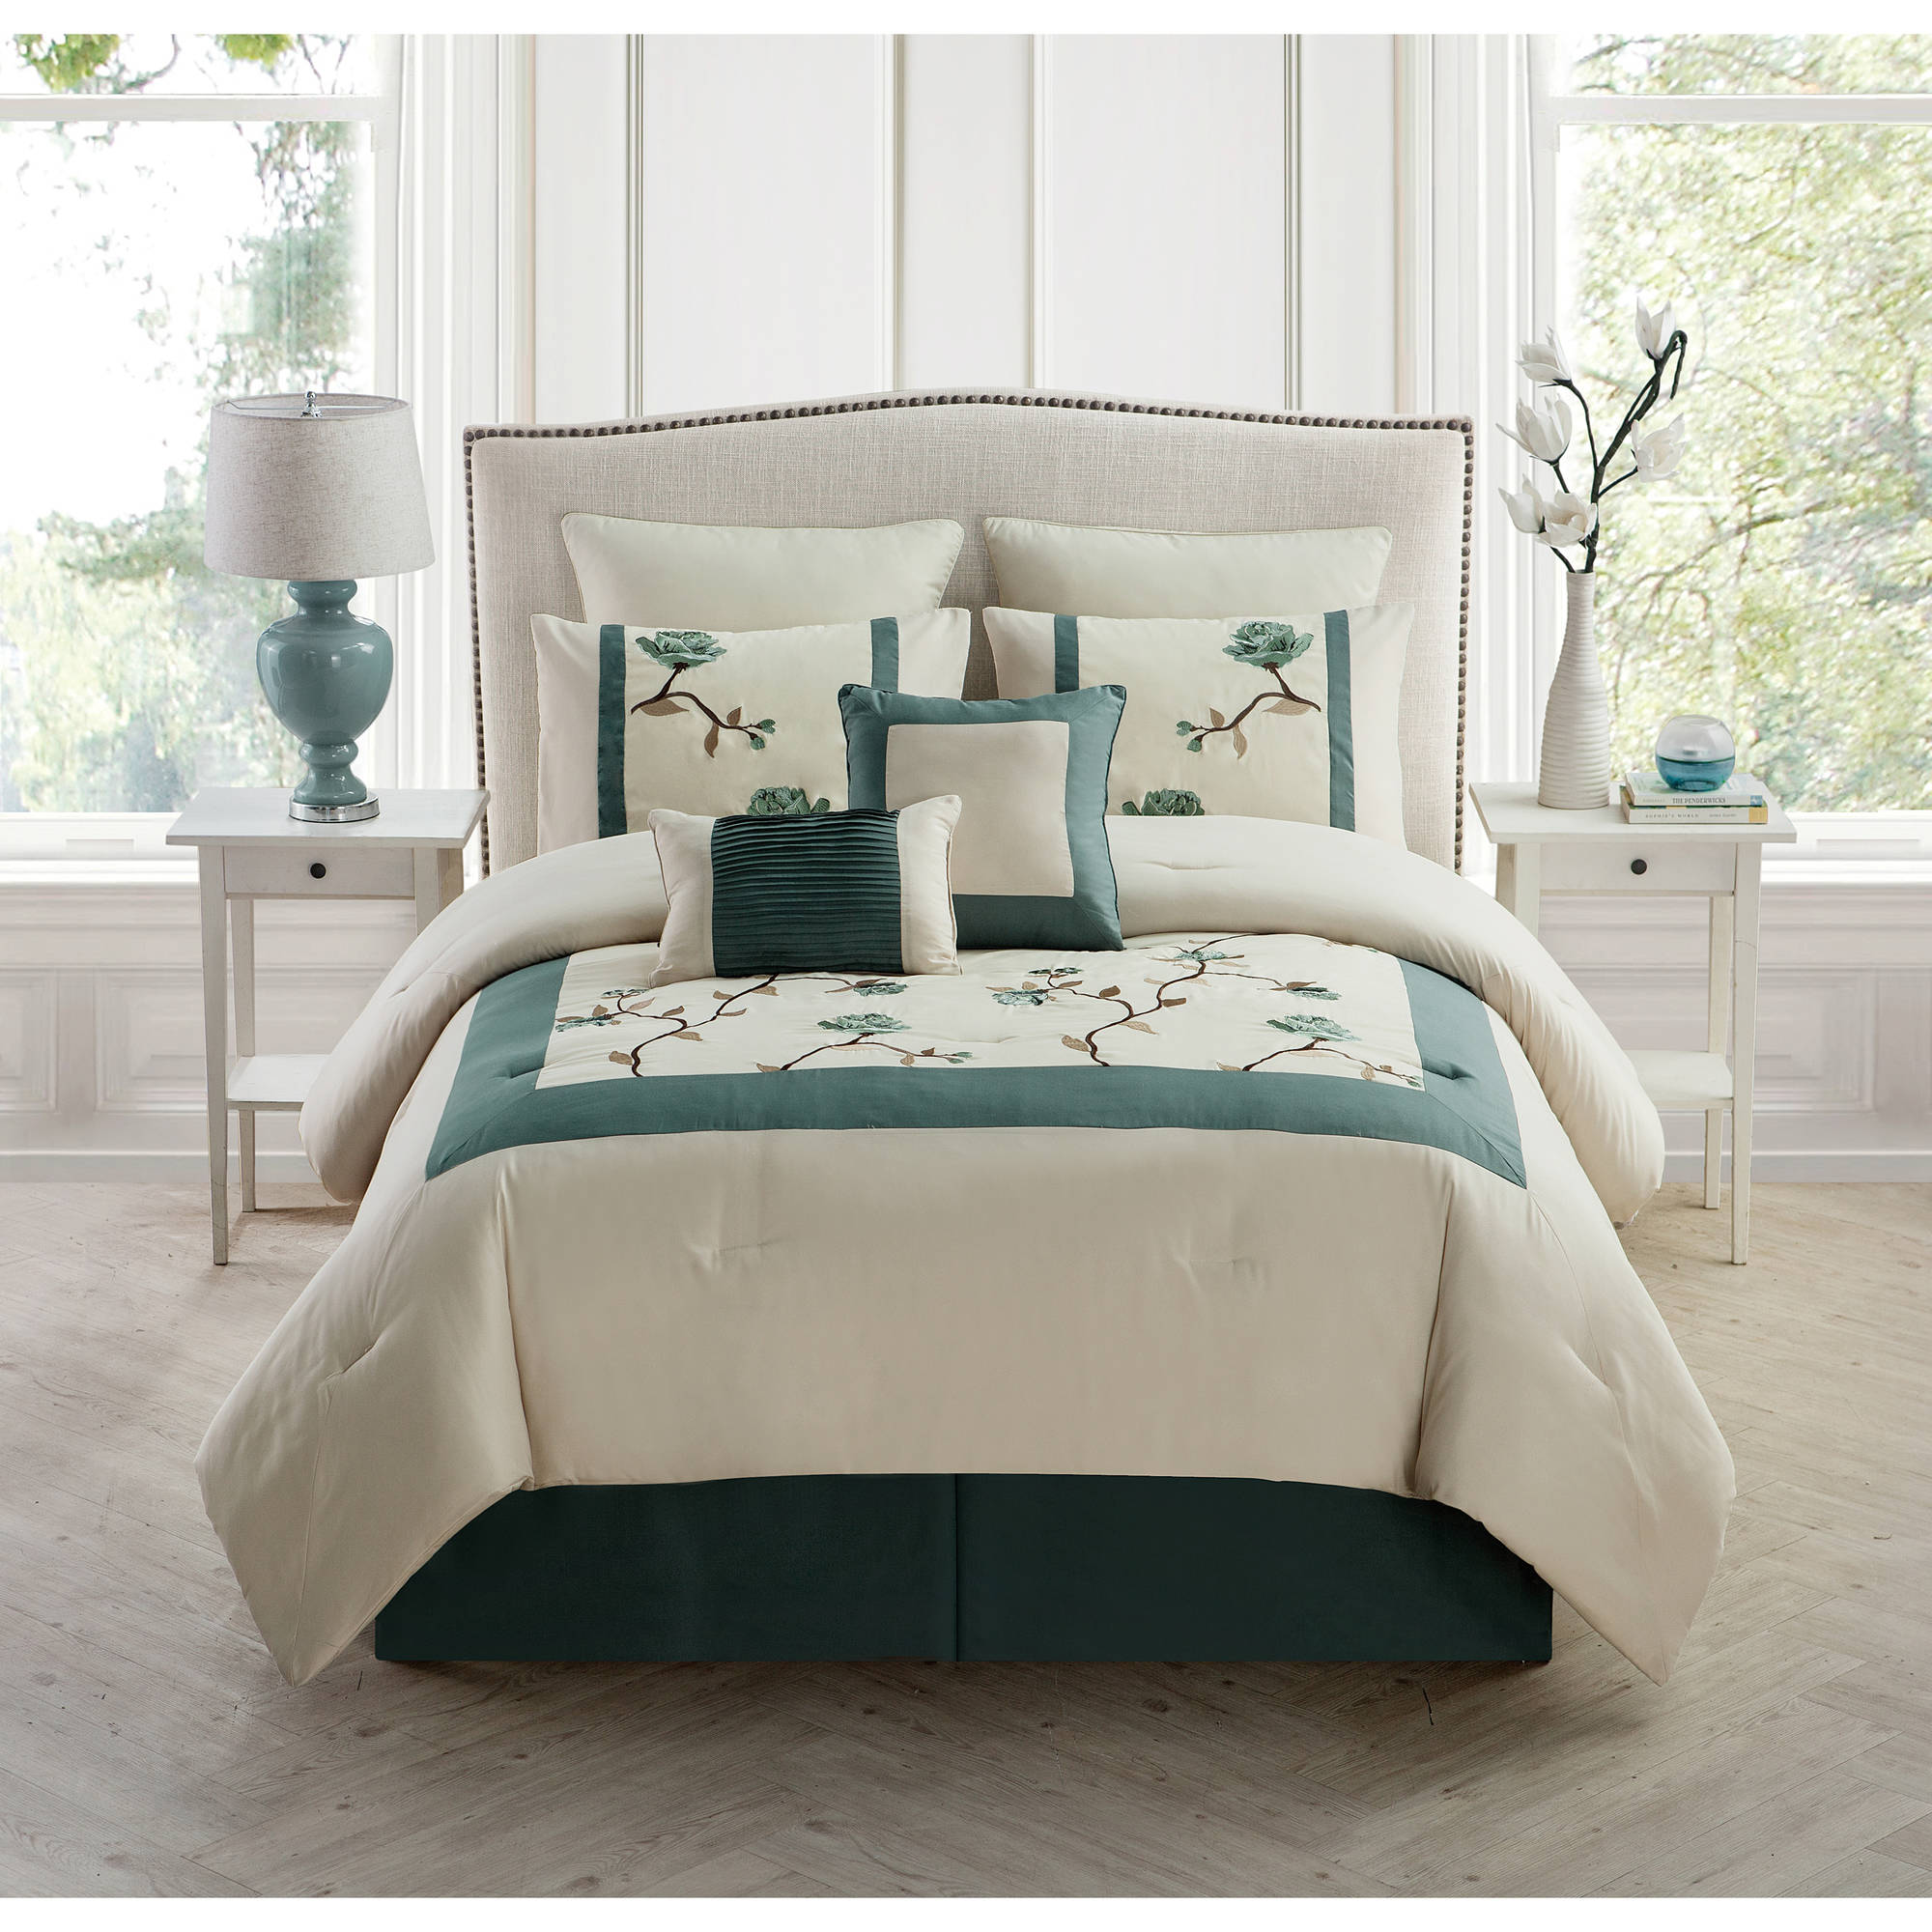 Trousdale 8-Piece Embroidered Bedding Comforter Set, Euro Shams included